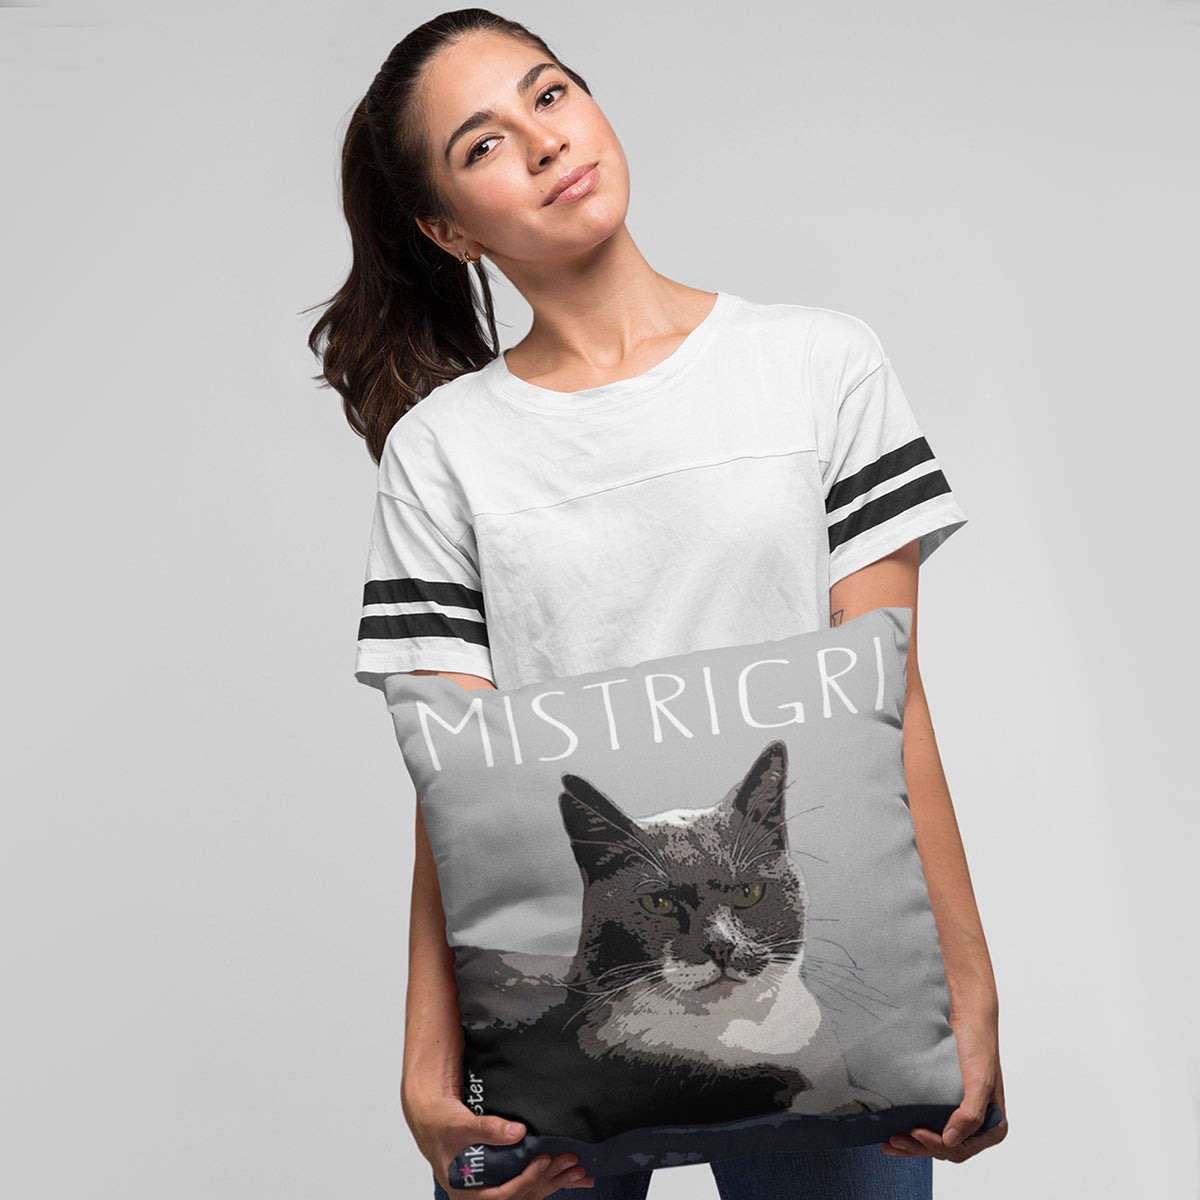 Young lady holding her PinkPoster pillow with her cat art on it